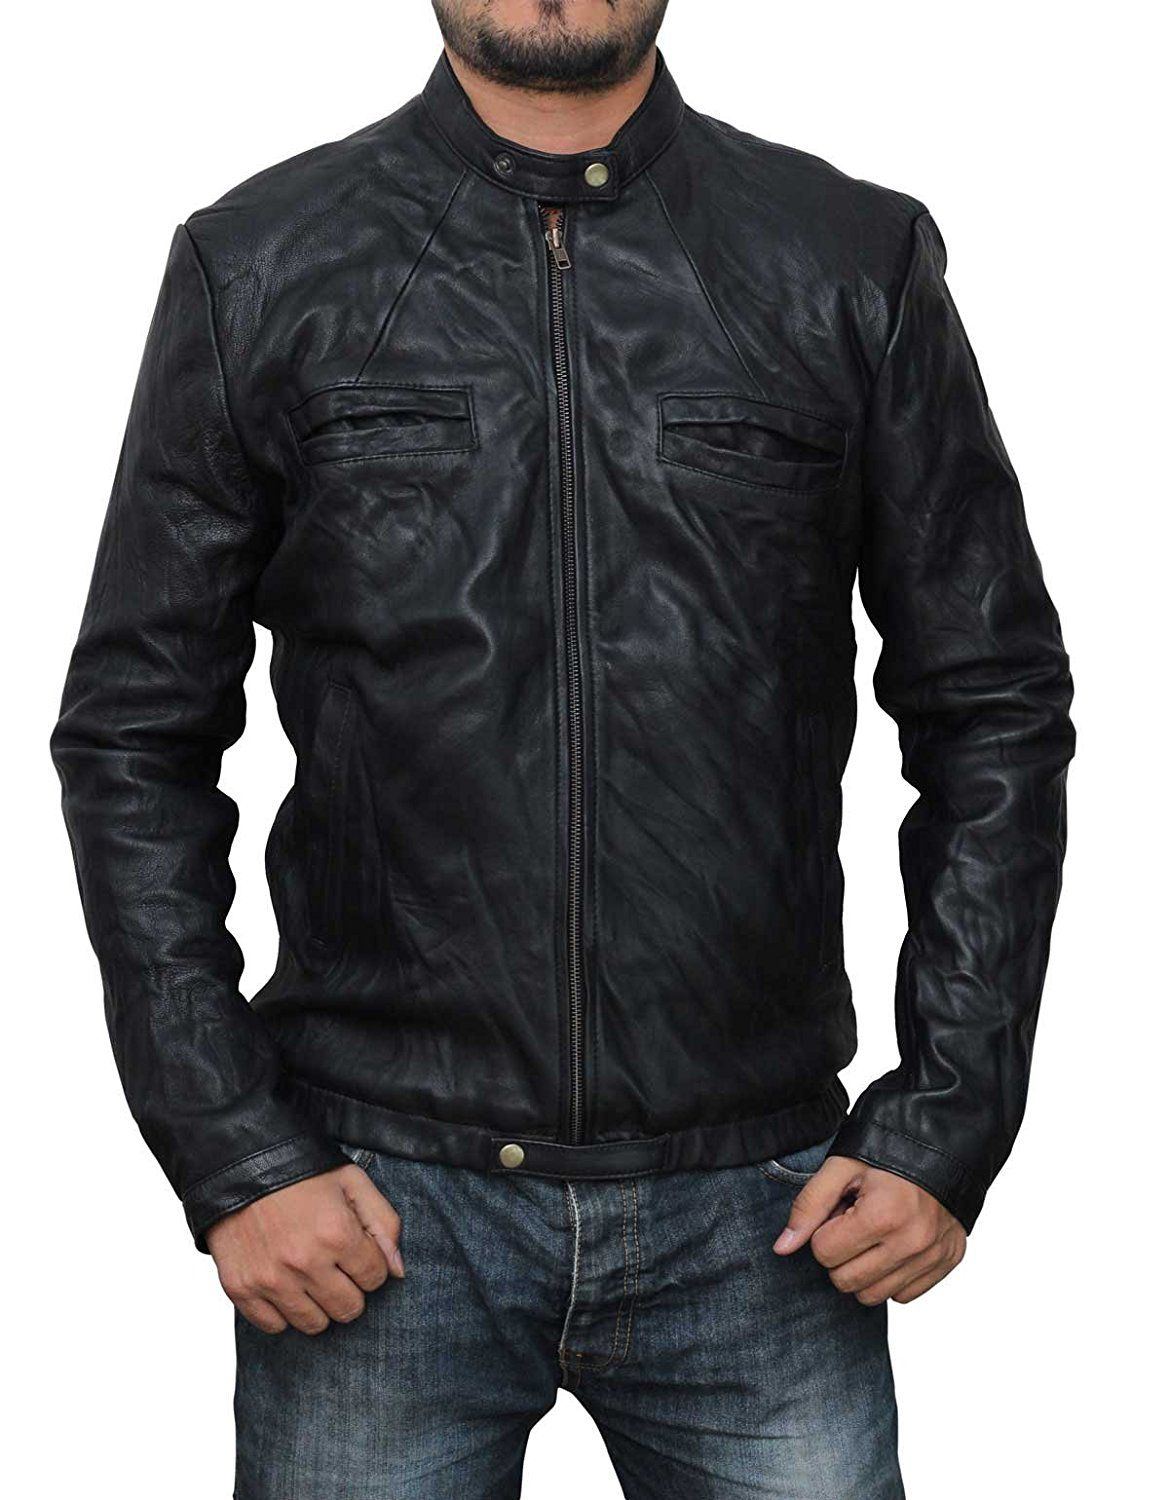 17 Again Slim Fit Lambskin Leather Jacket DEAL OF THE DAY